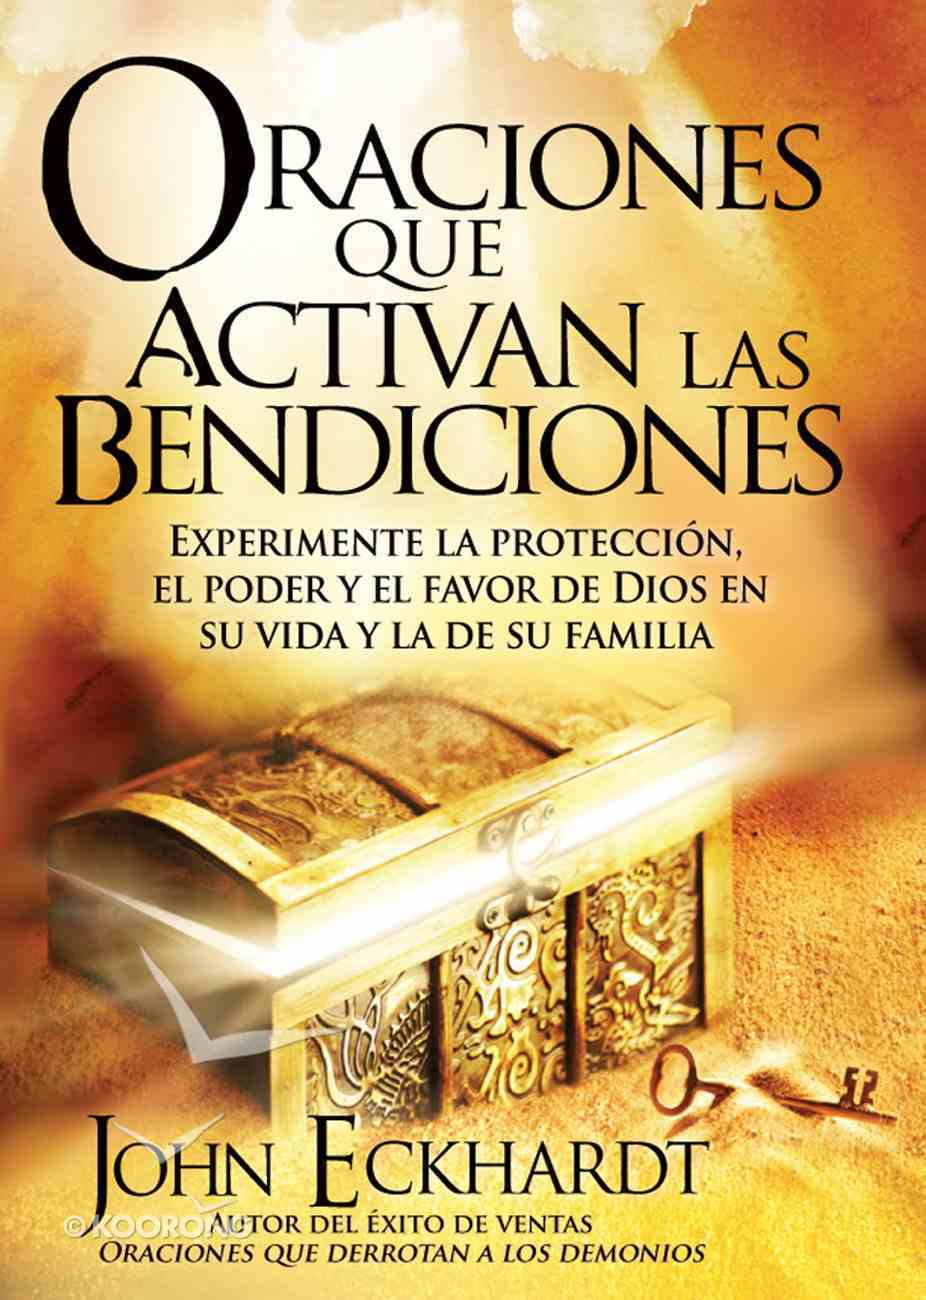 Oraciones Que Activan Las Bendiciones (Spanish) (Spa) (Prayers That Activate God's Blessing) eBook